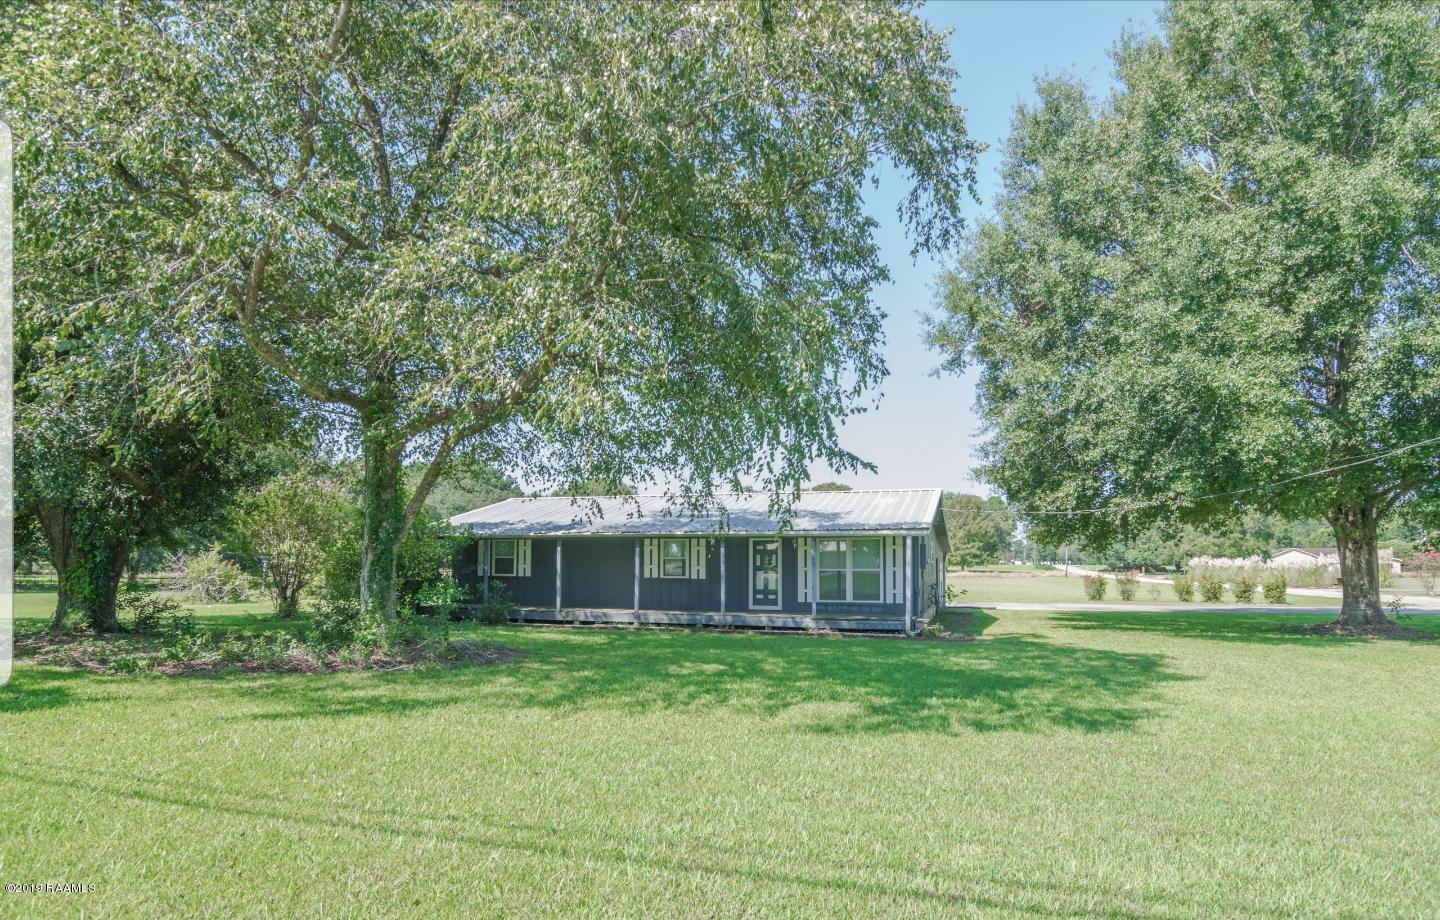 101 Betsy Ross Drive, Youngsville, LA 70592 Photo #1